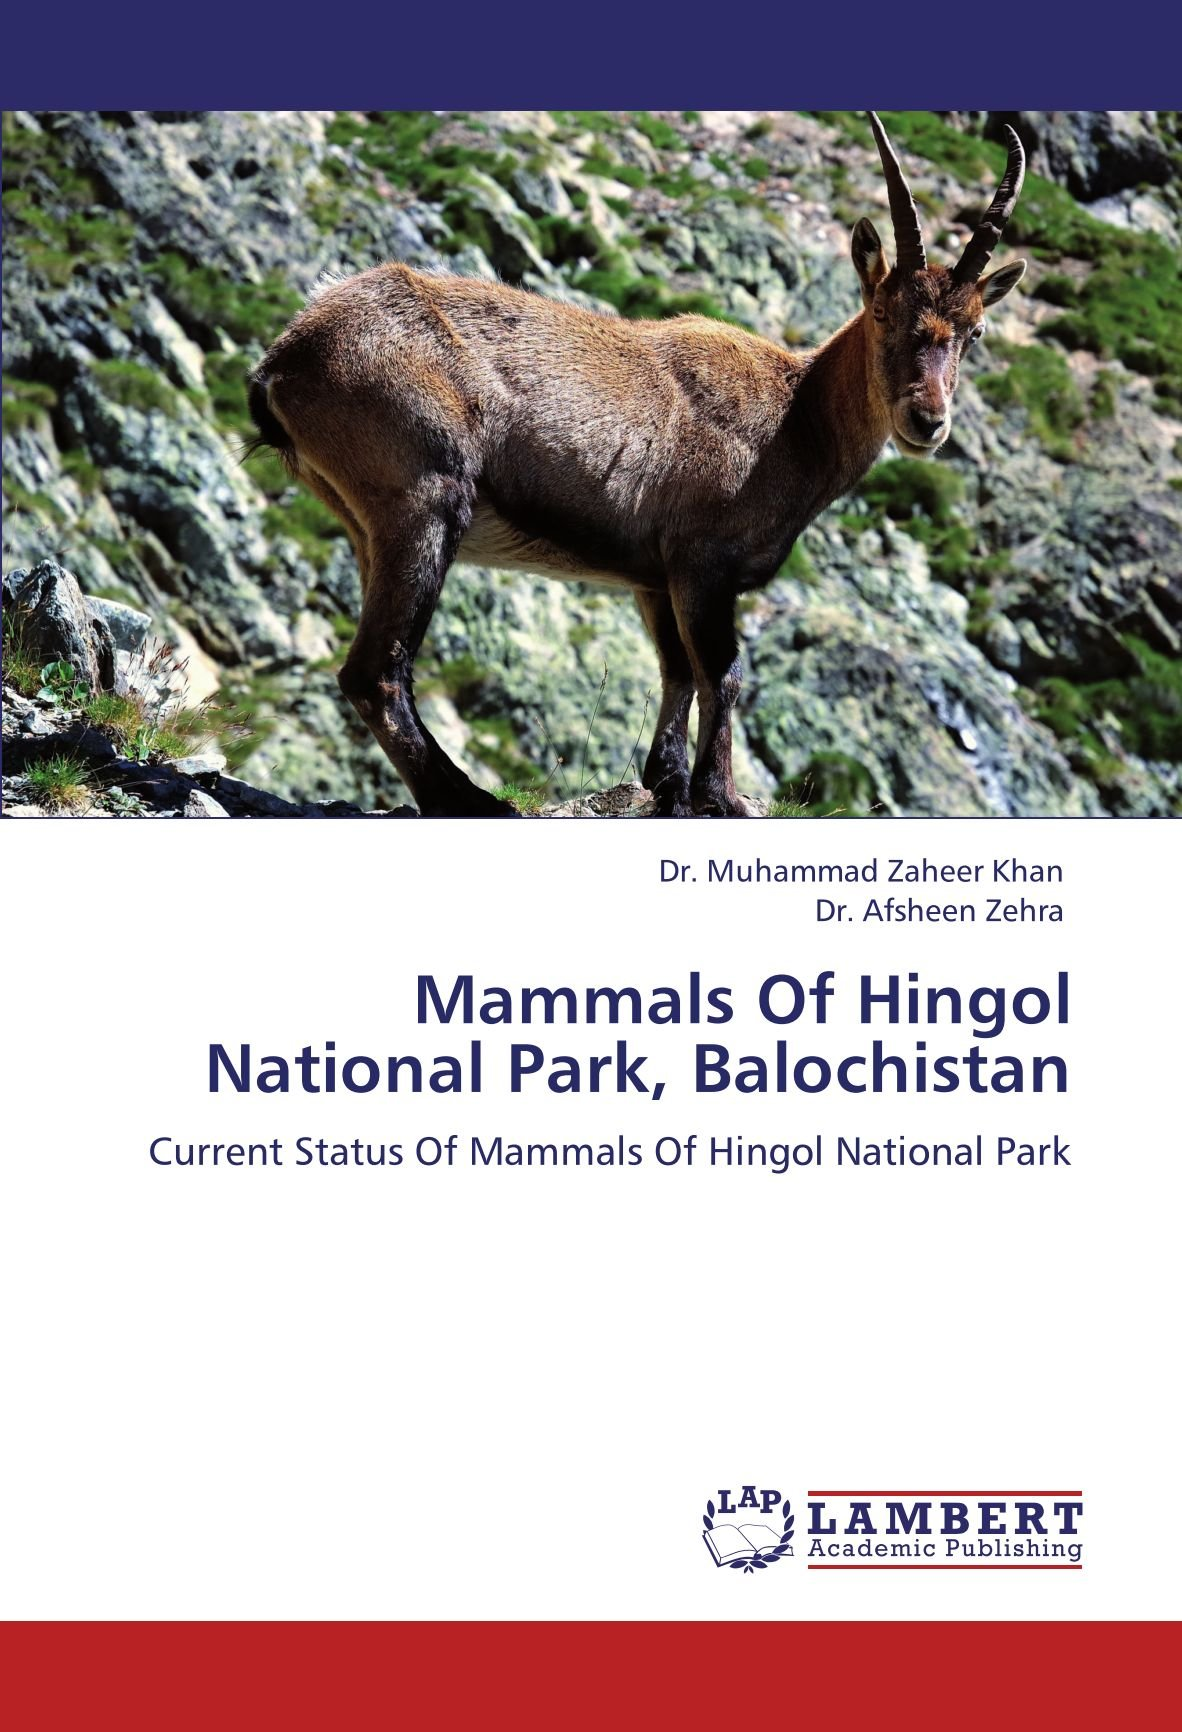 Mammals Of Hingol National Park, Balochistan: Current Status Of